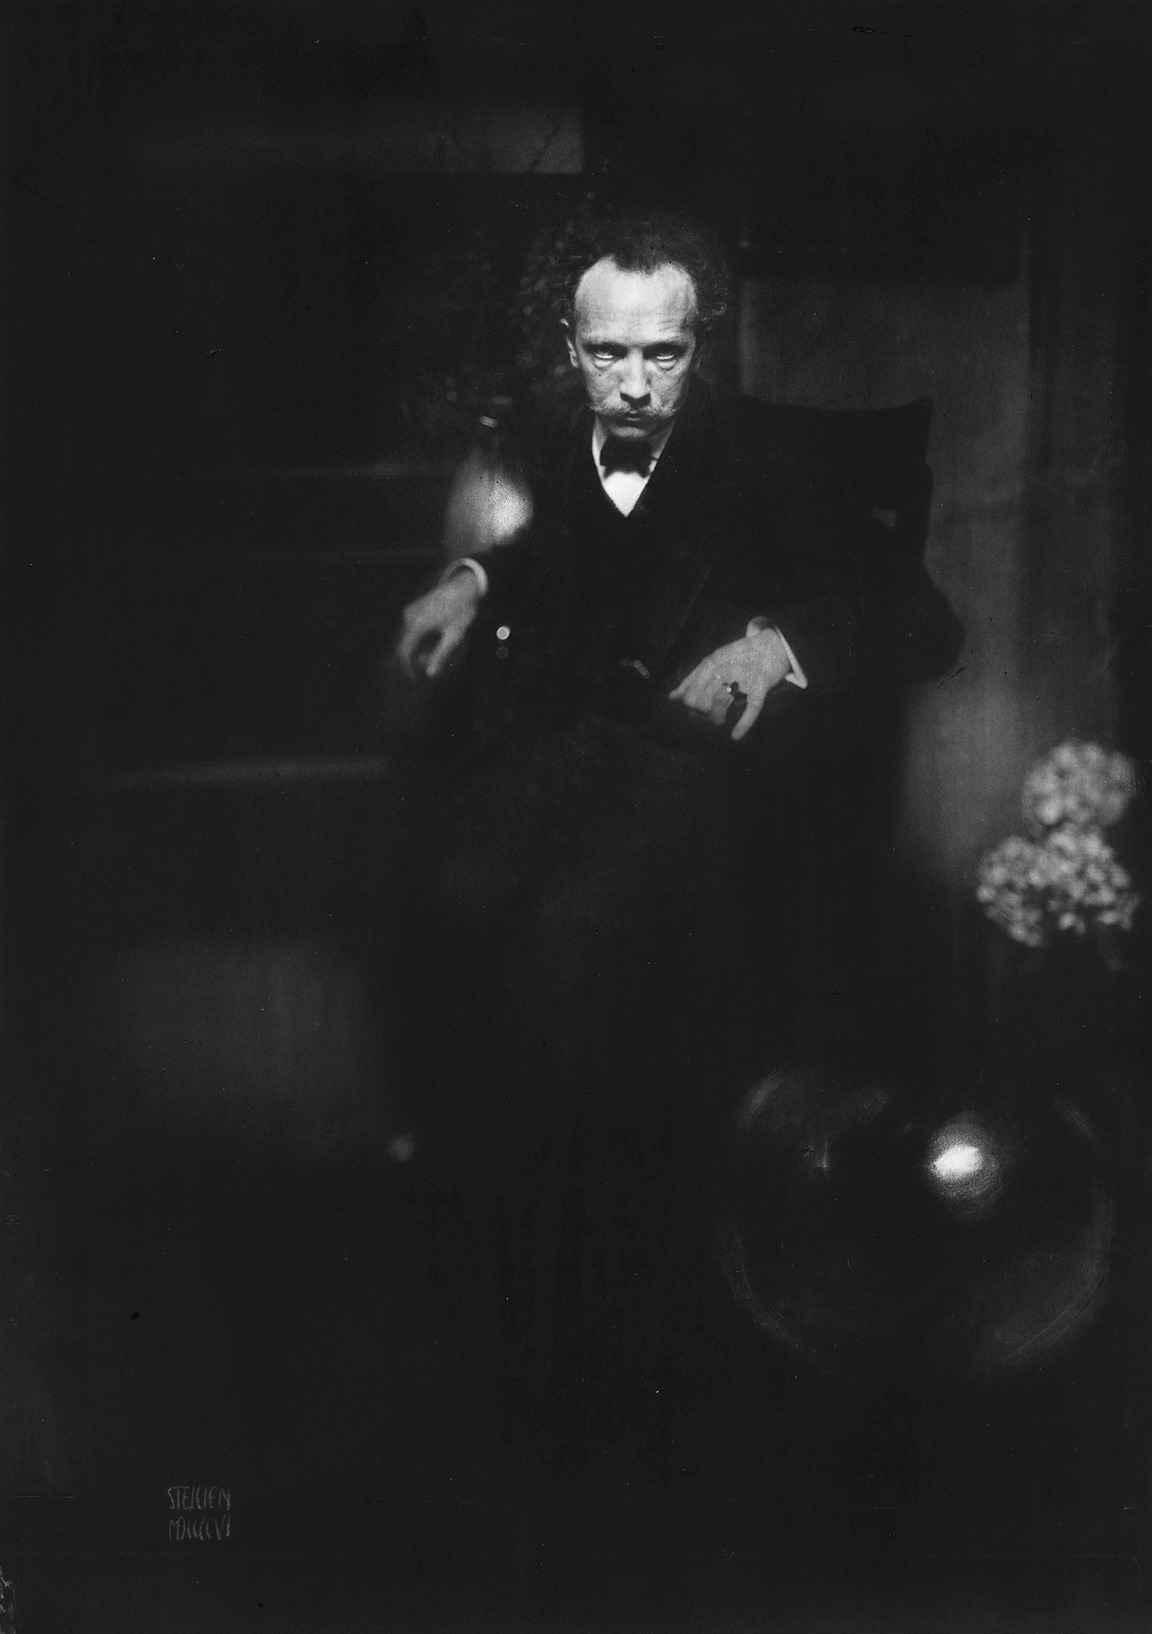 © Edward J. Steichen, 1904, Portrait of Richard Strauss The German composer and conductor Richard Strauss (1864-1949) visited the United States for the first time in the spring of 1904. He came to New York expressly to conduct the premier of Symphonia domestica (1903), an orchestral work which caused a stir in the music community by detailing the composer's own life at home with his wife and child. » find more photos of famous people here «